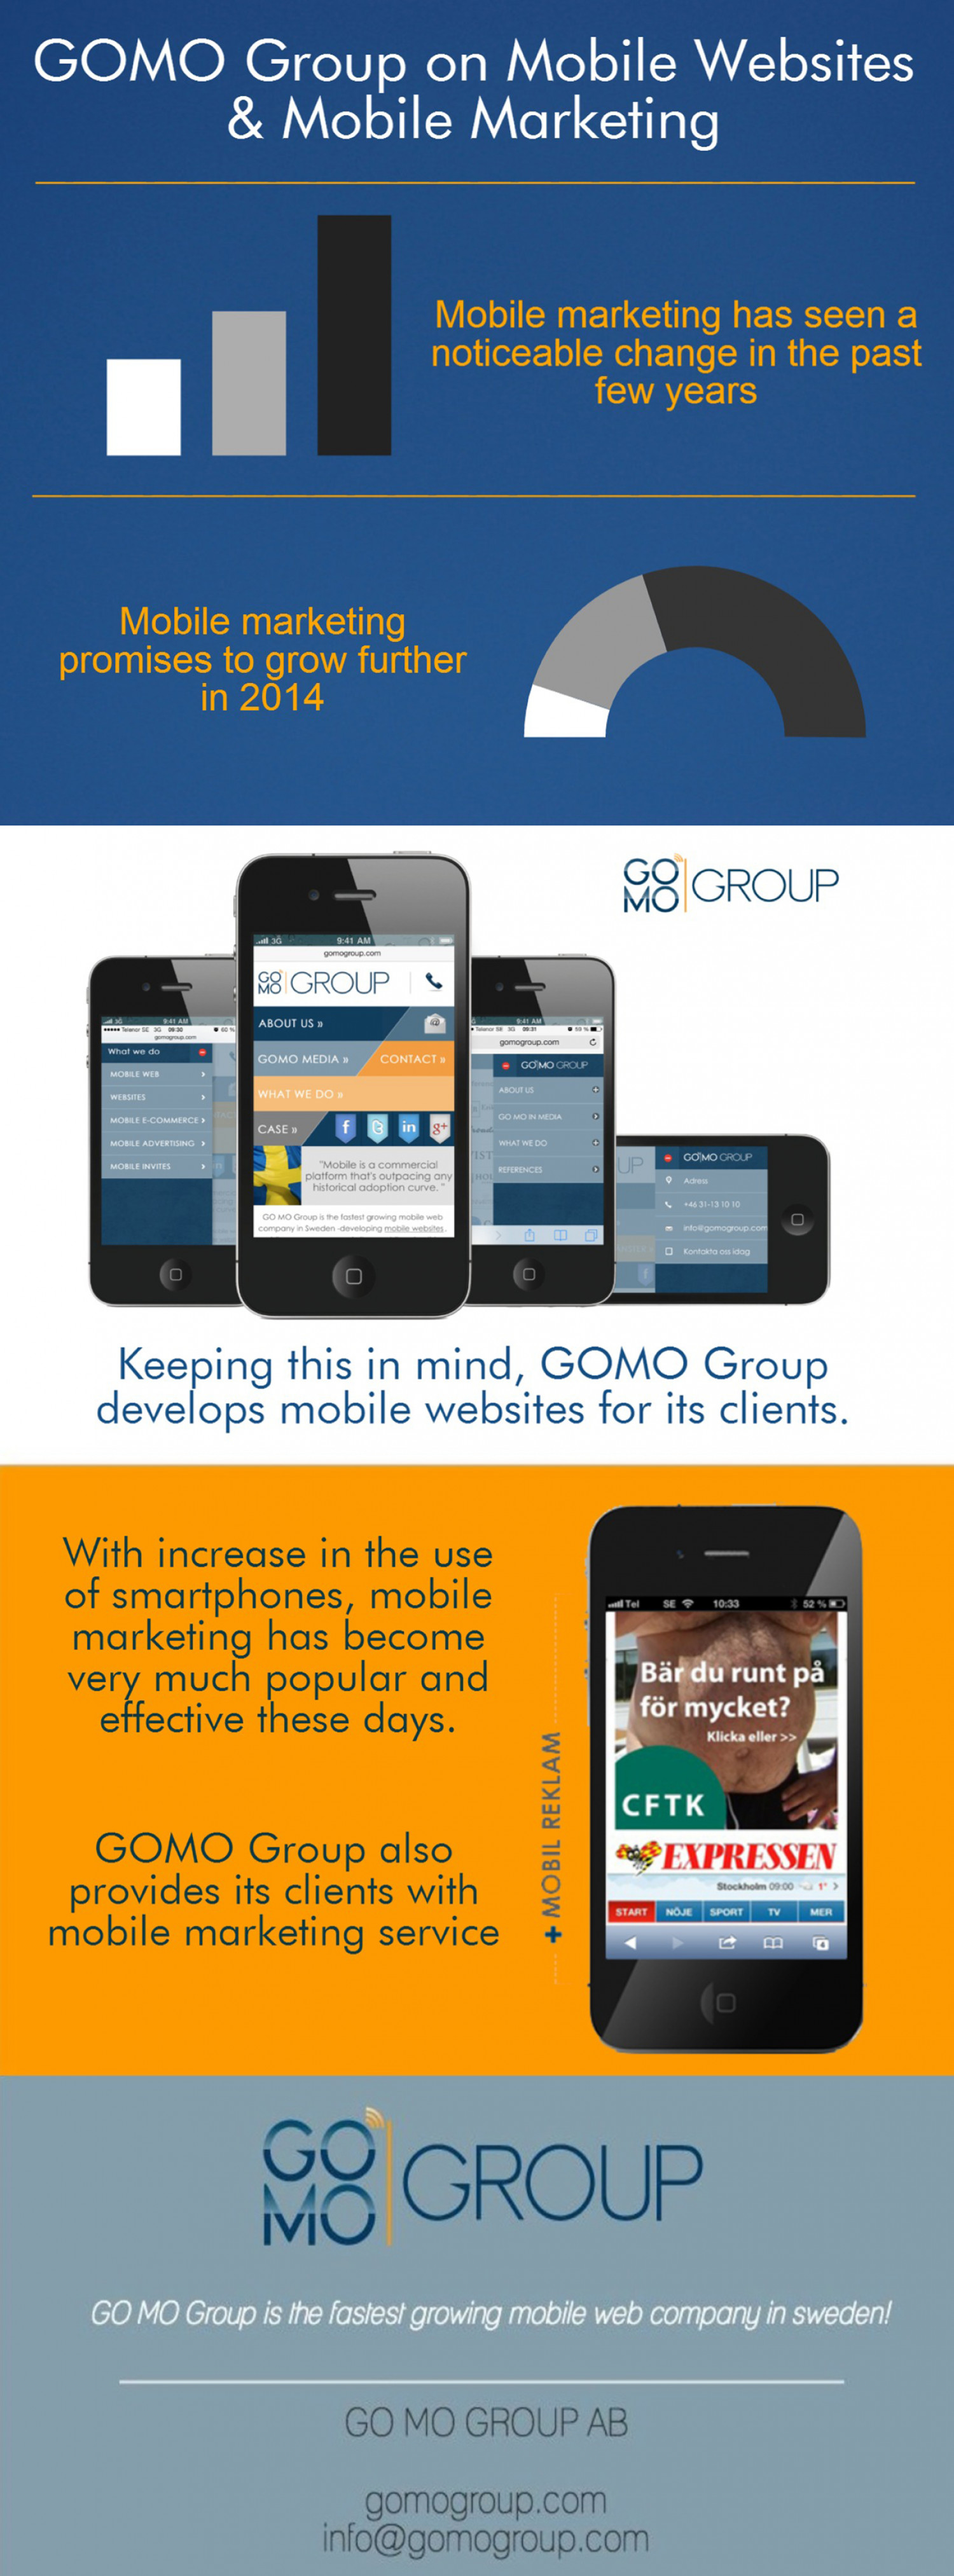 GOMO Group on Mobile Websites and Mobile Marketing  Infographic